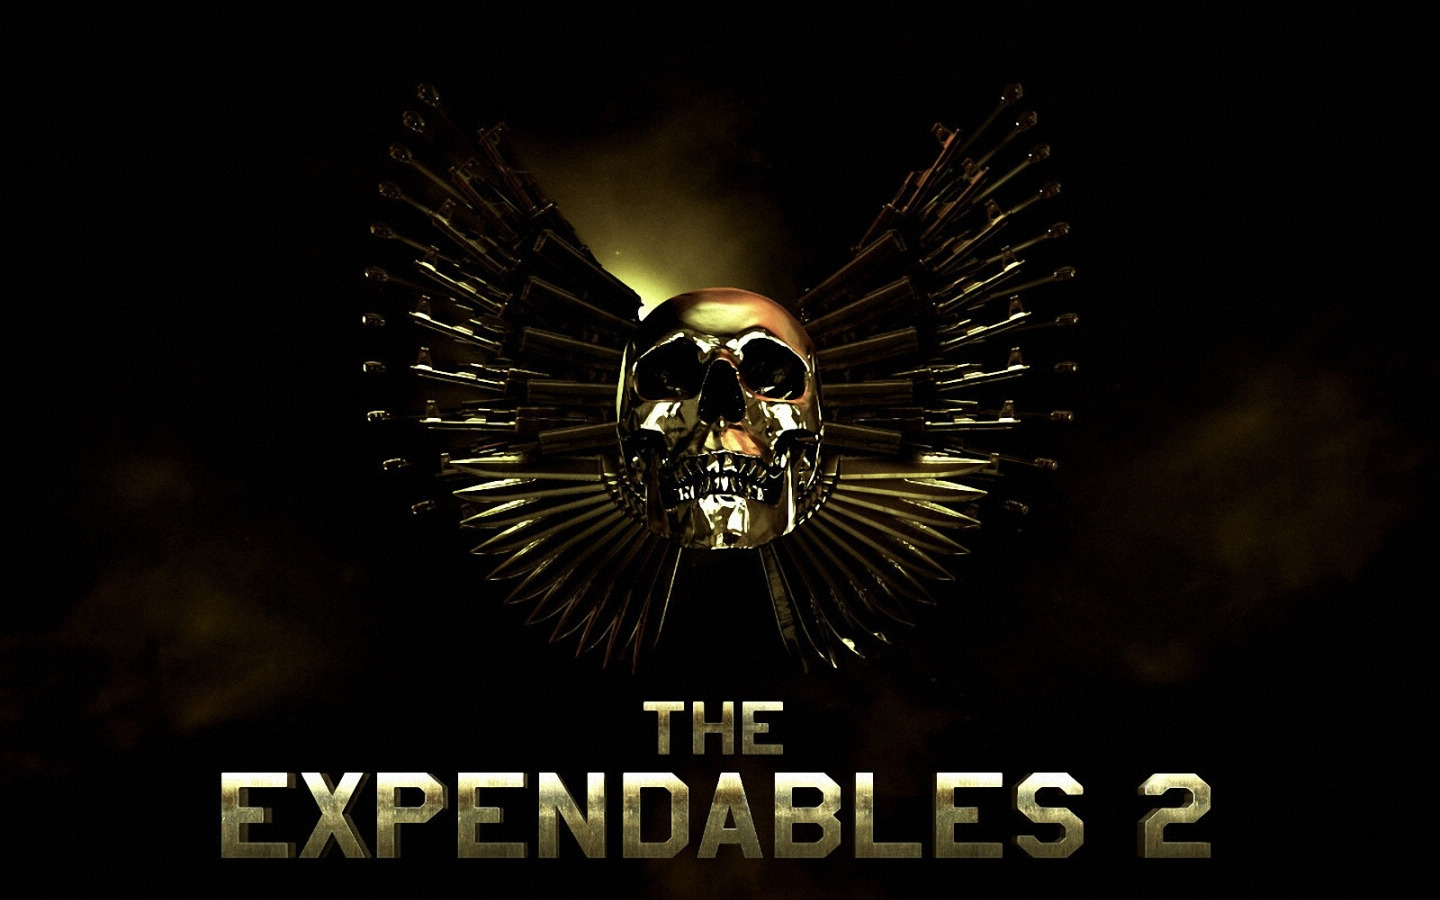 1440x900 The Expendables 2 desktop PC and Mac wallpaper 1440x900